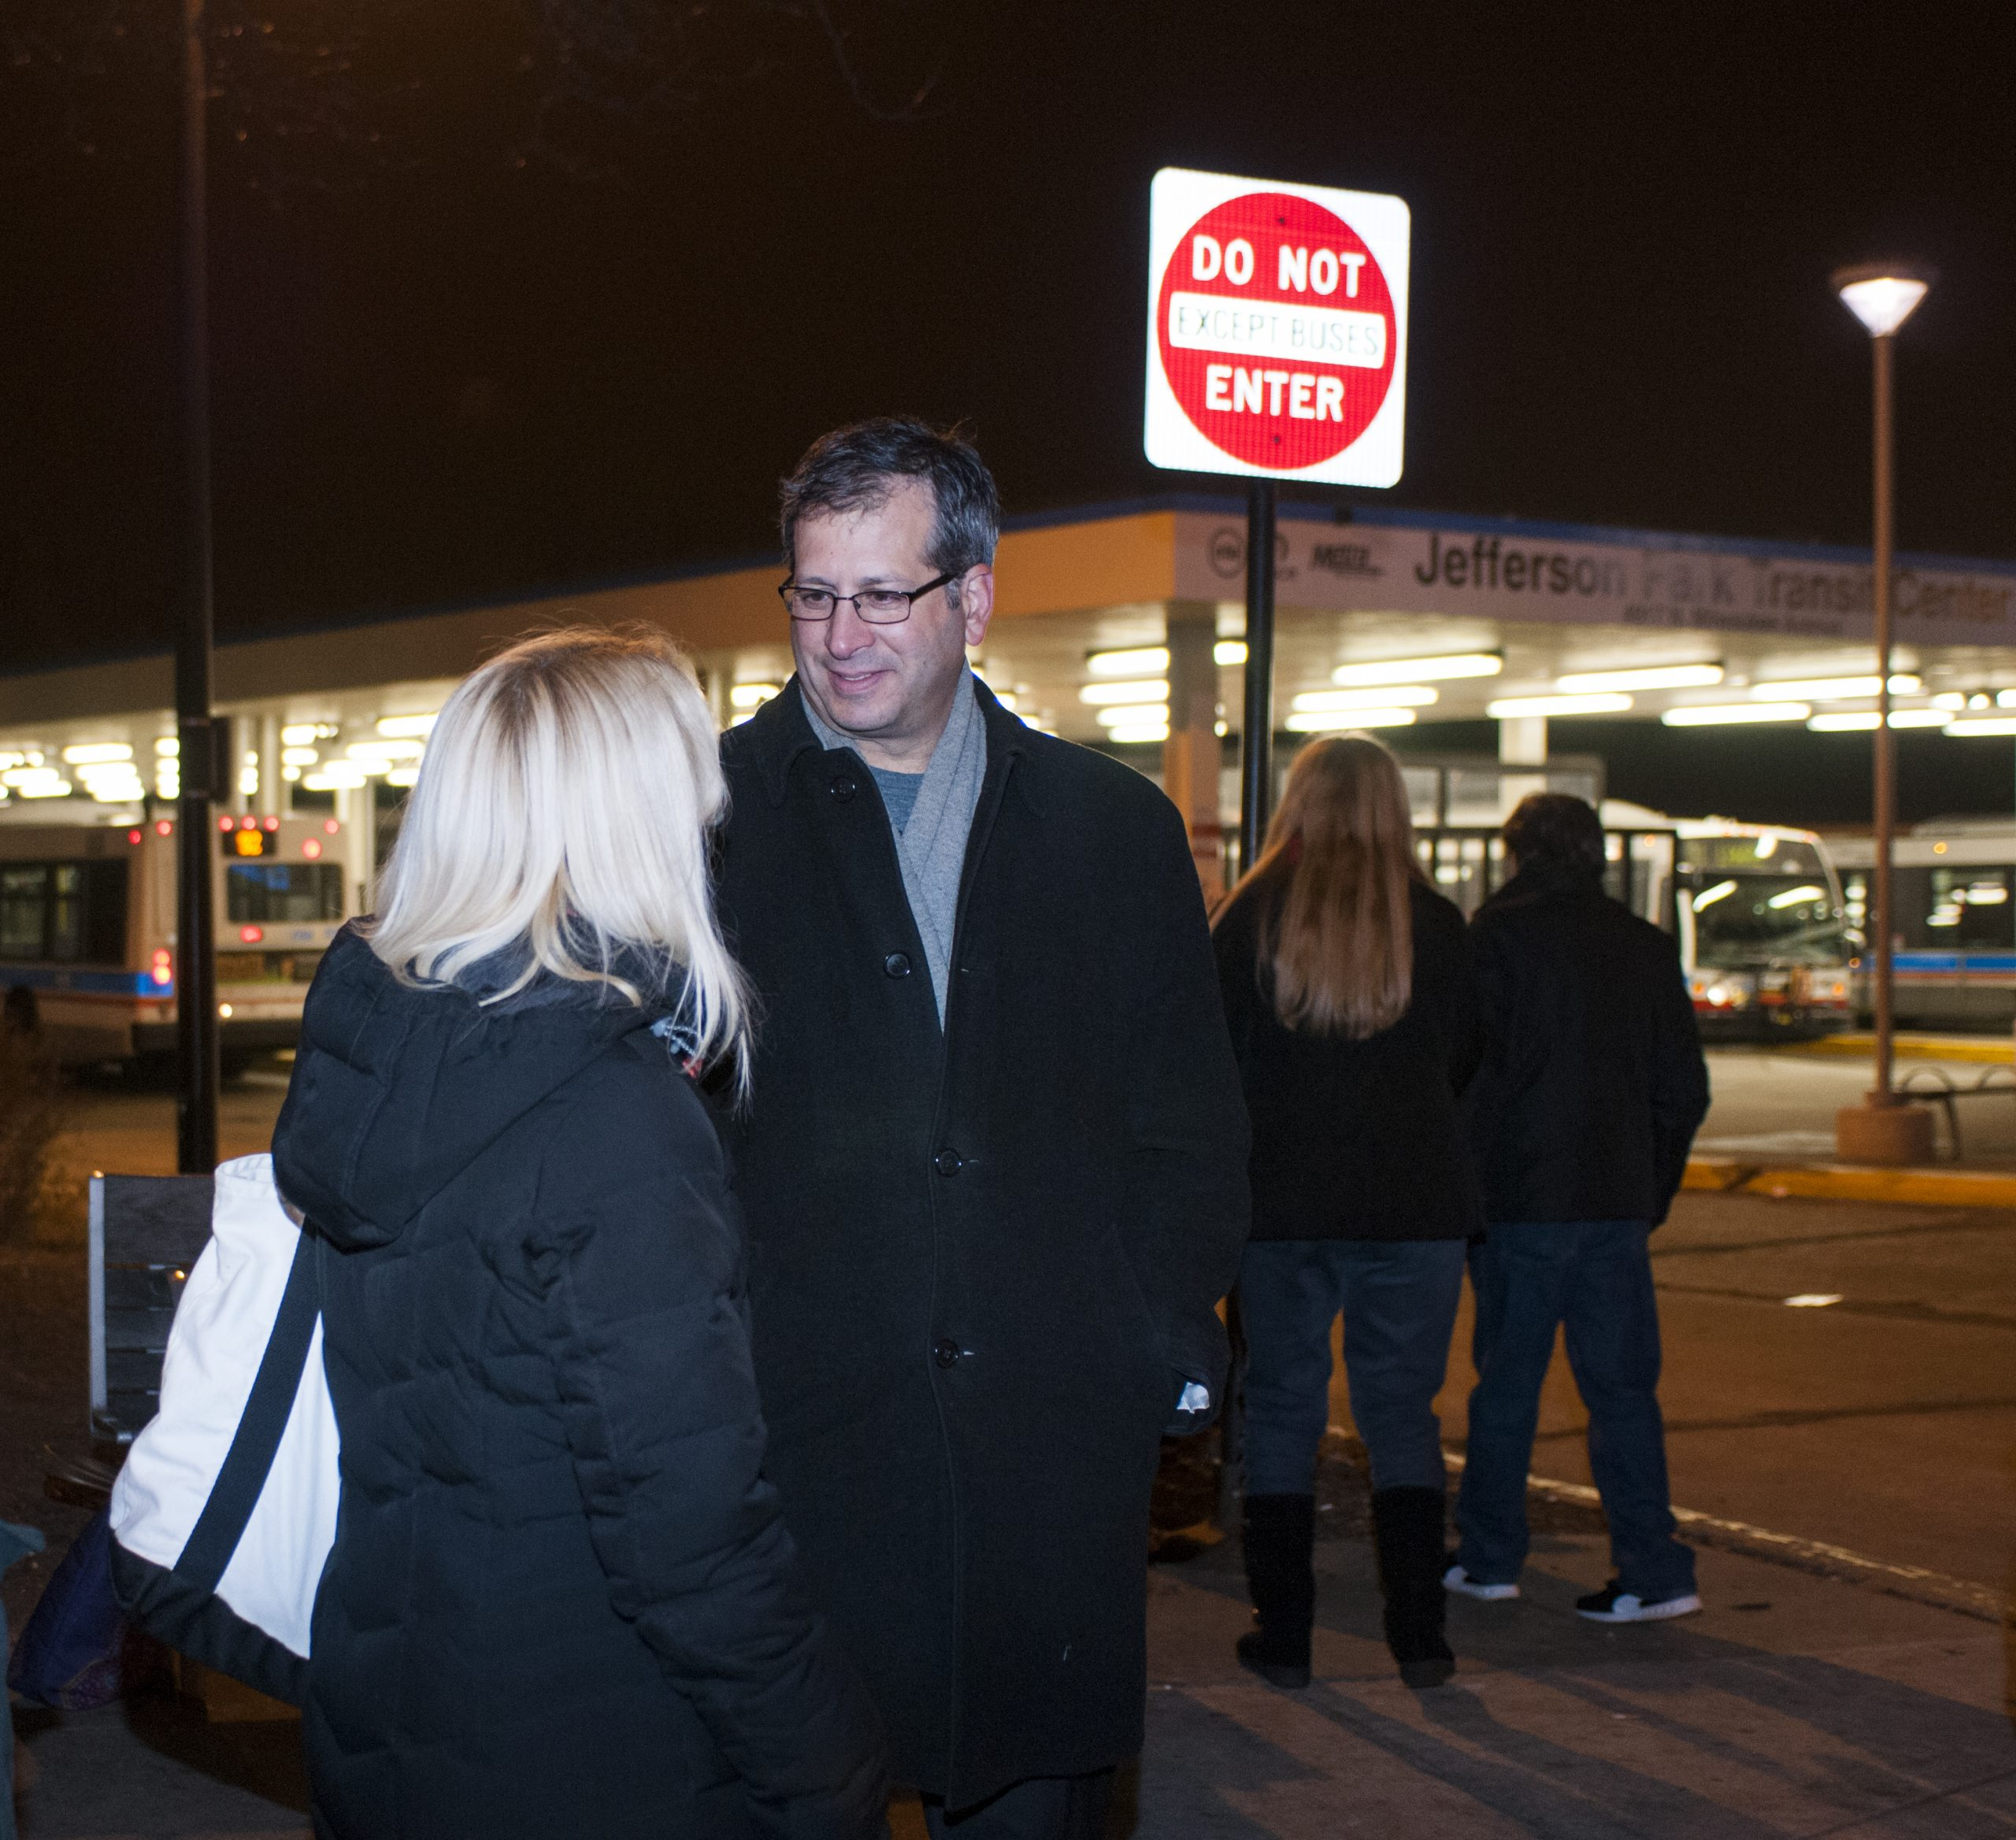 45th Ward alderman John Arena speaks with constituents at a Jefferson Park Forward event Monday.